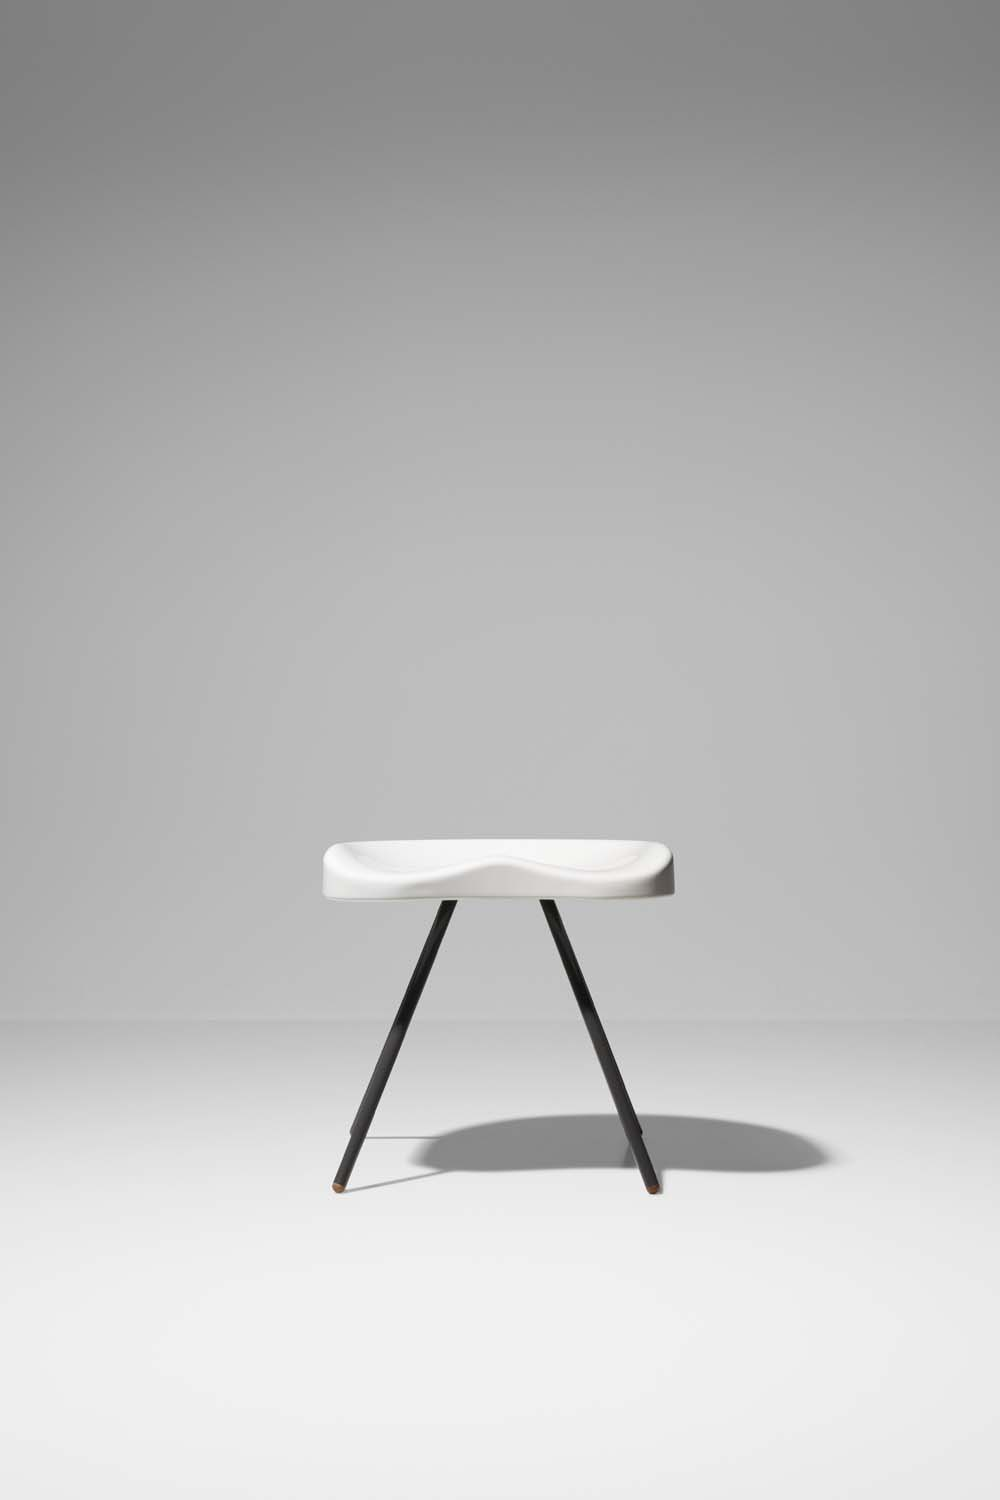 Lausnotebook prouv raw a new look on jean prouv by g star raw for vitra - Tabouret jean prouve ...